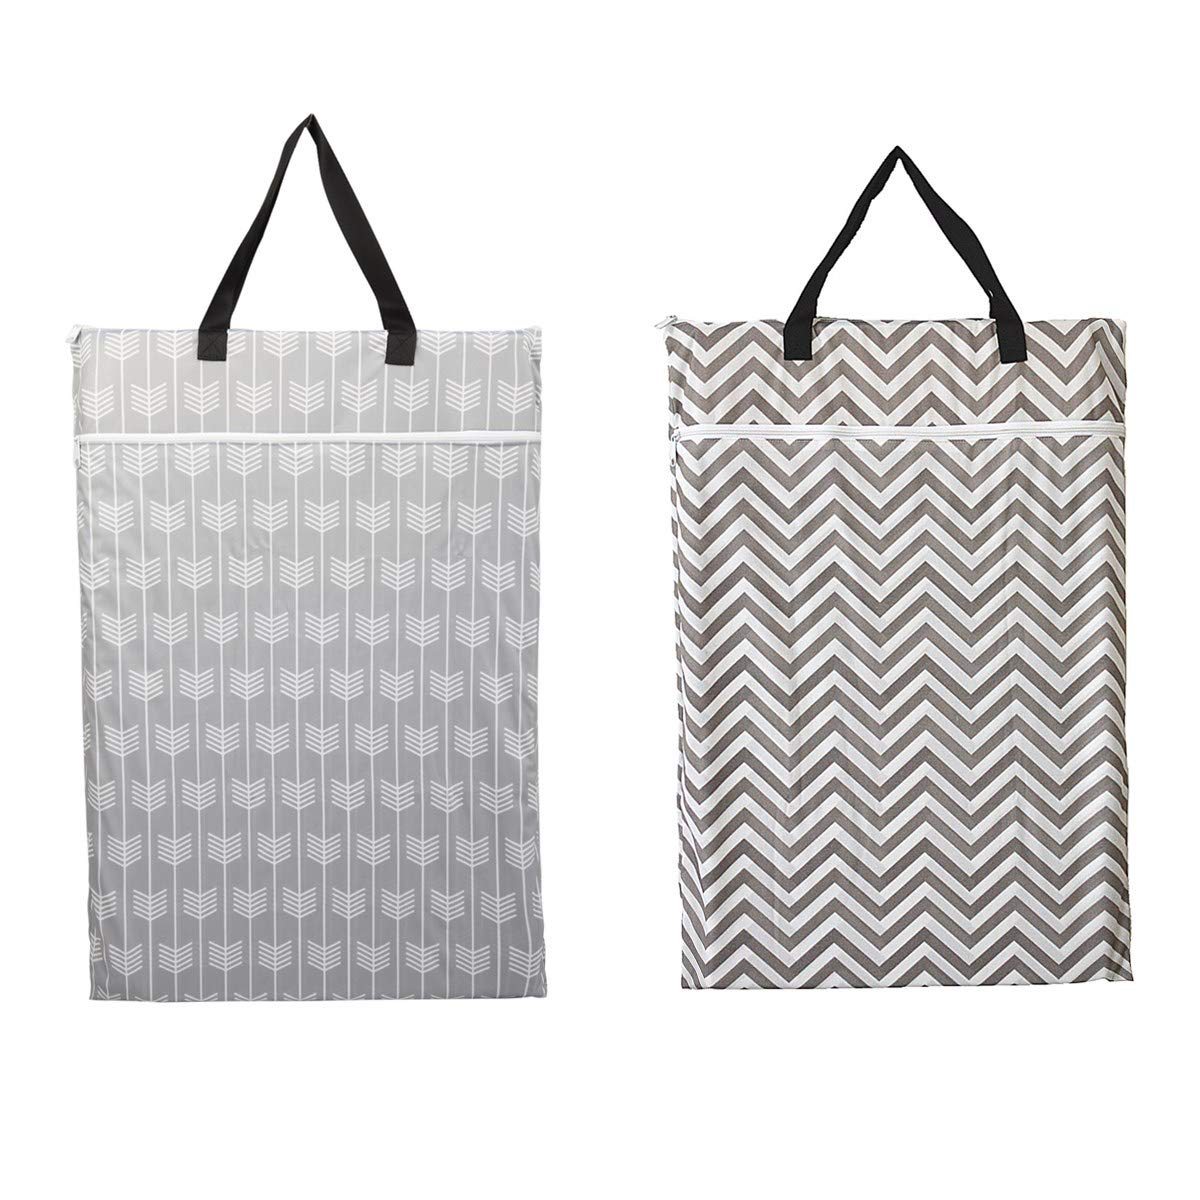 2 Pack Large Hanging Wet Bags Laundry Pail Bags Cloth Diapers Reusable (Arrow Chevron) by Sigzagor